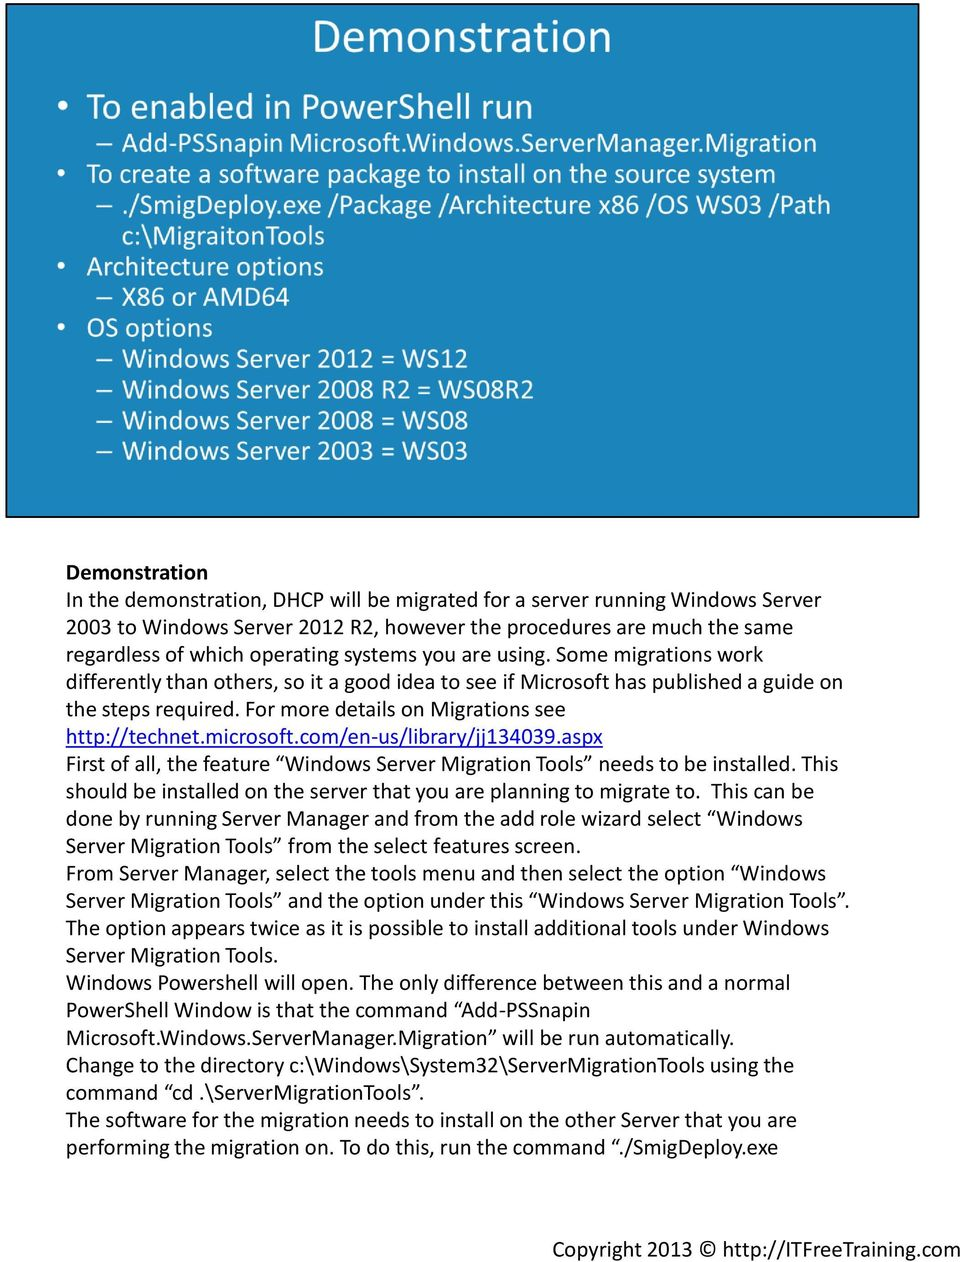 For more details on Migrations see http://technet.microsoft.com/en-us/library/jj134039.aspx First of all, the feature Windows Server Migration Tools needs to be installed.